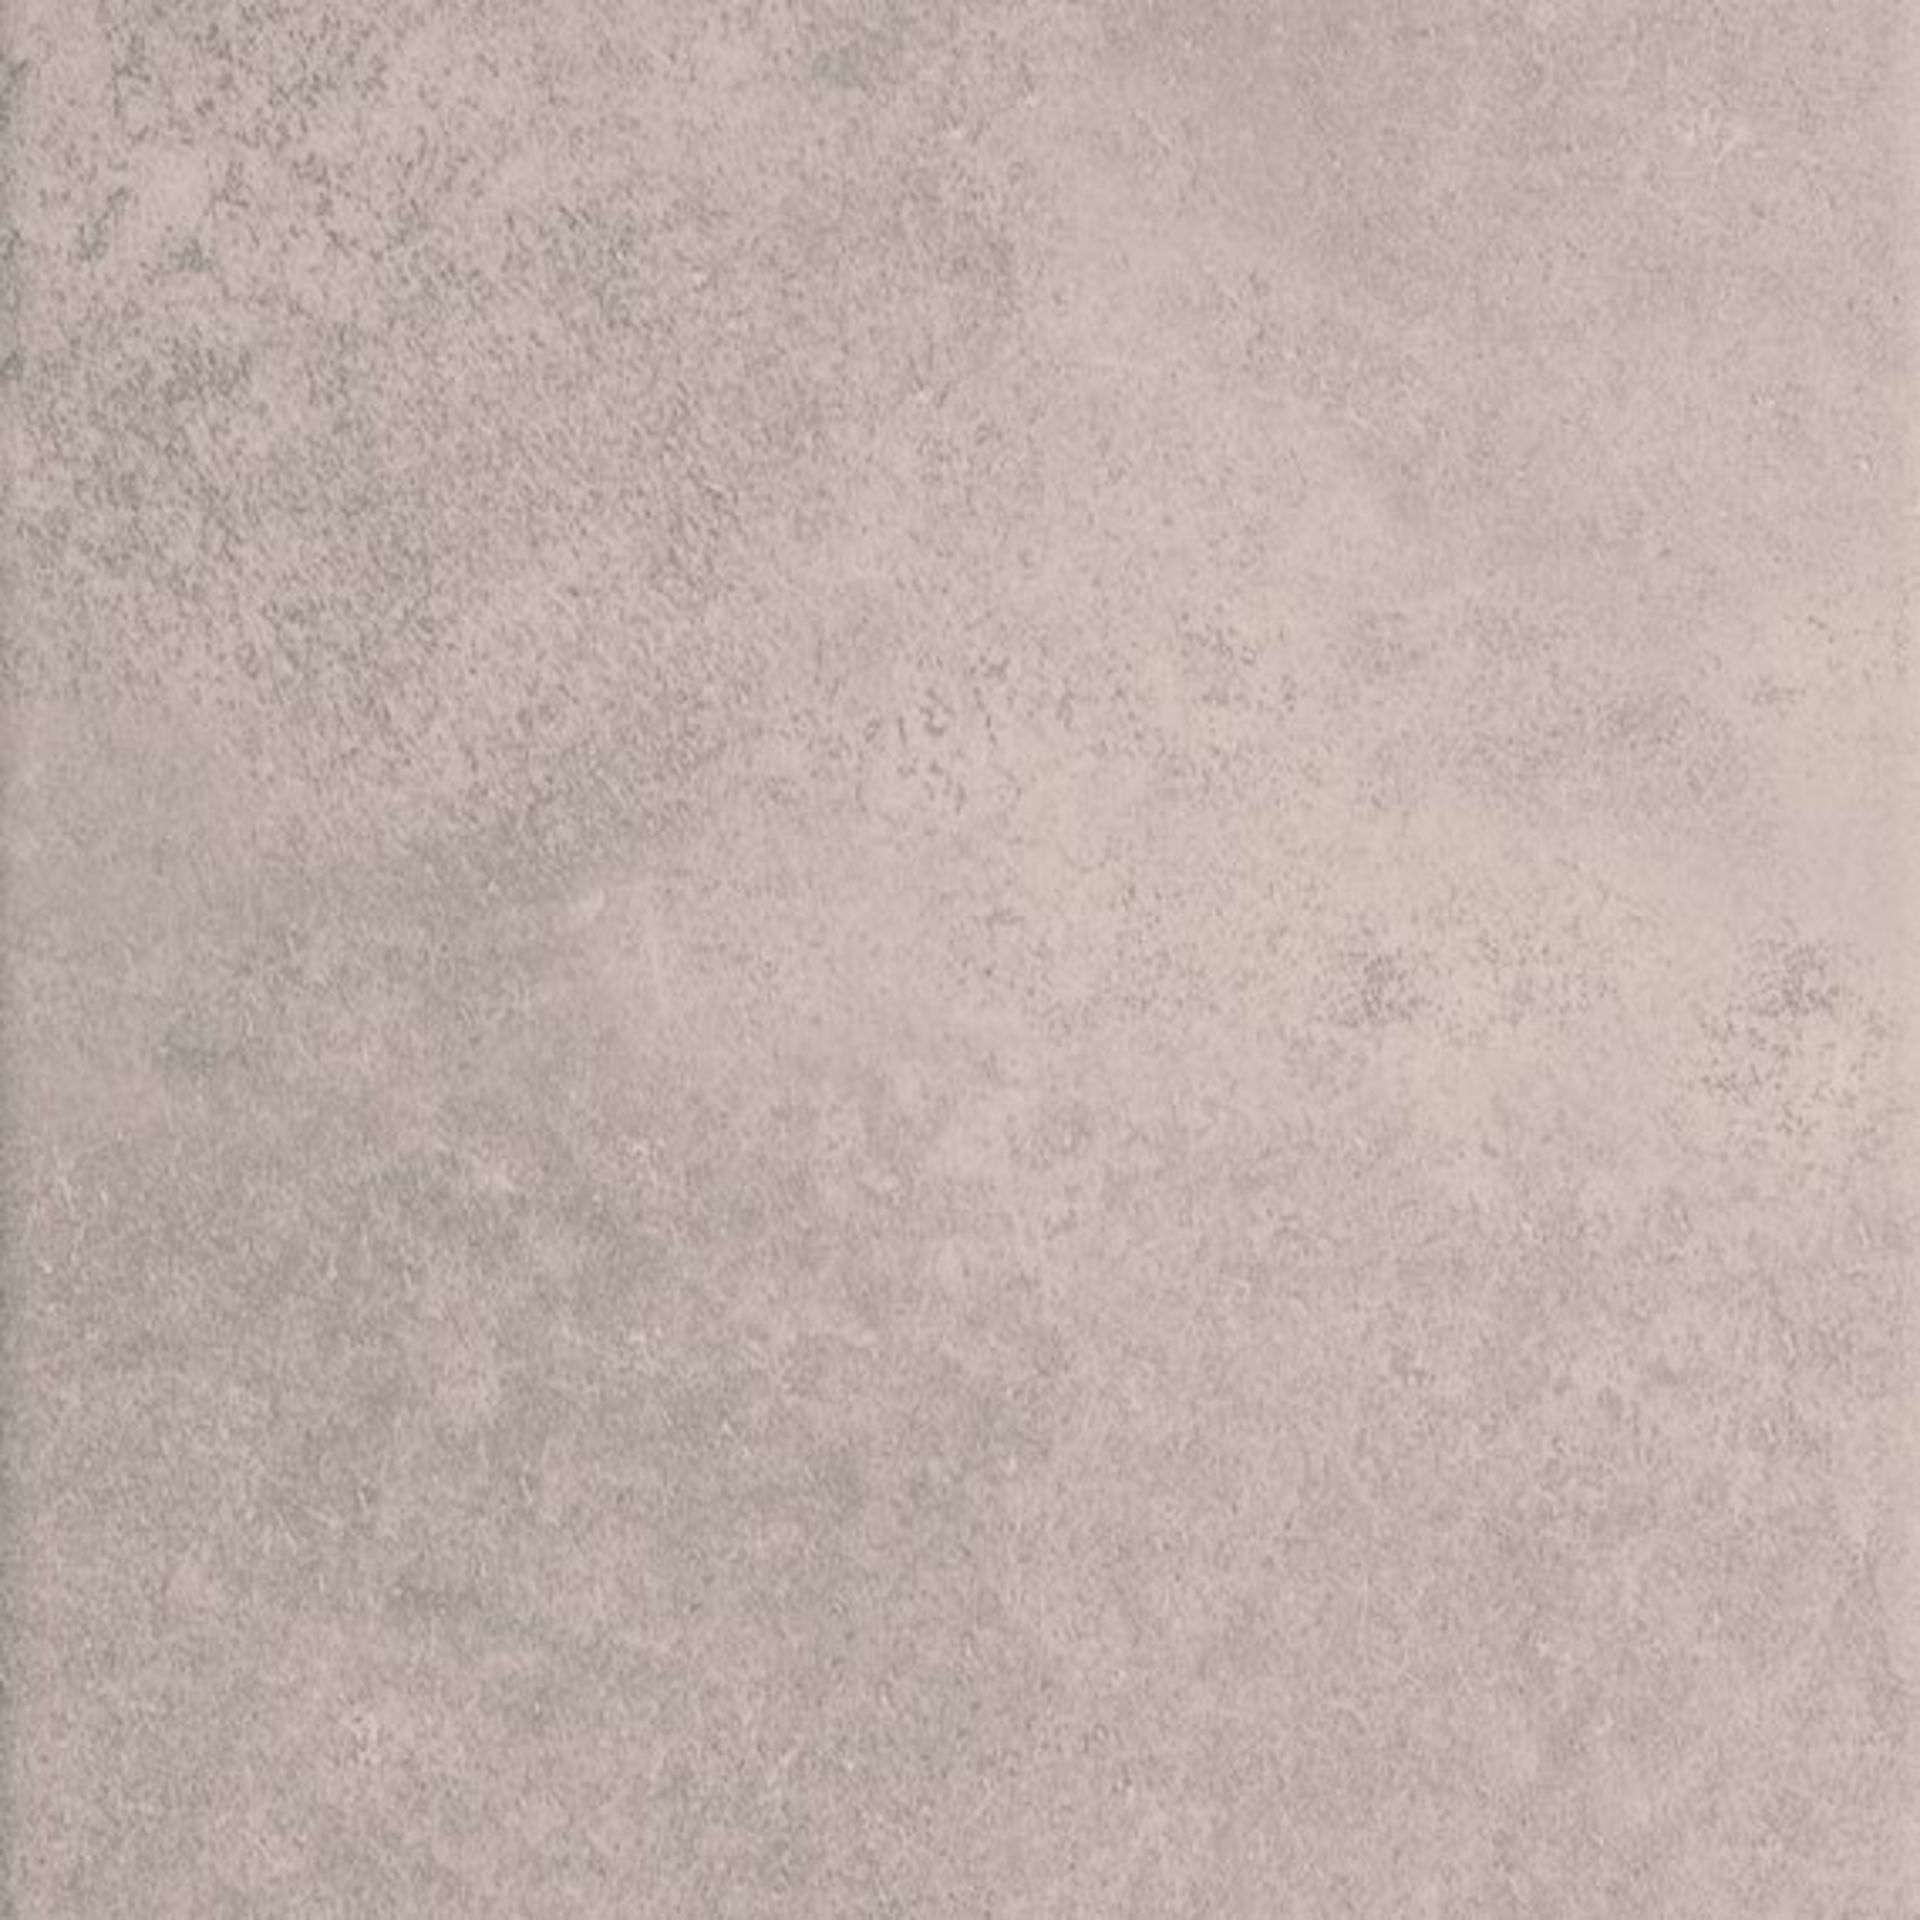 Combined RRP £1220 Pallet To Contain 64 Cartons Of Ab017Ycny03A017 County Natural Grey 300X200Mm - Image 2 of 2